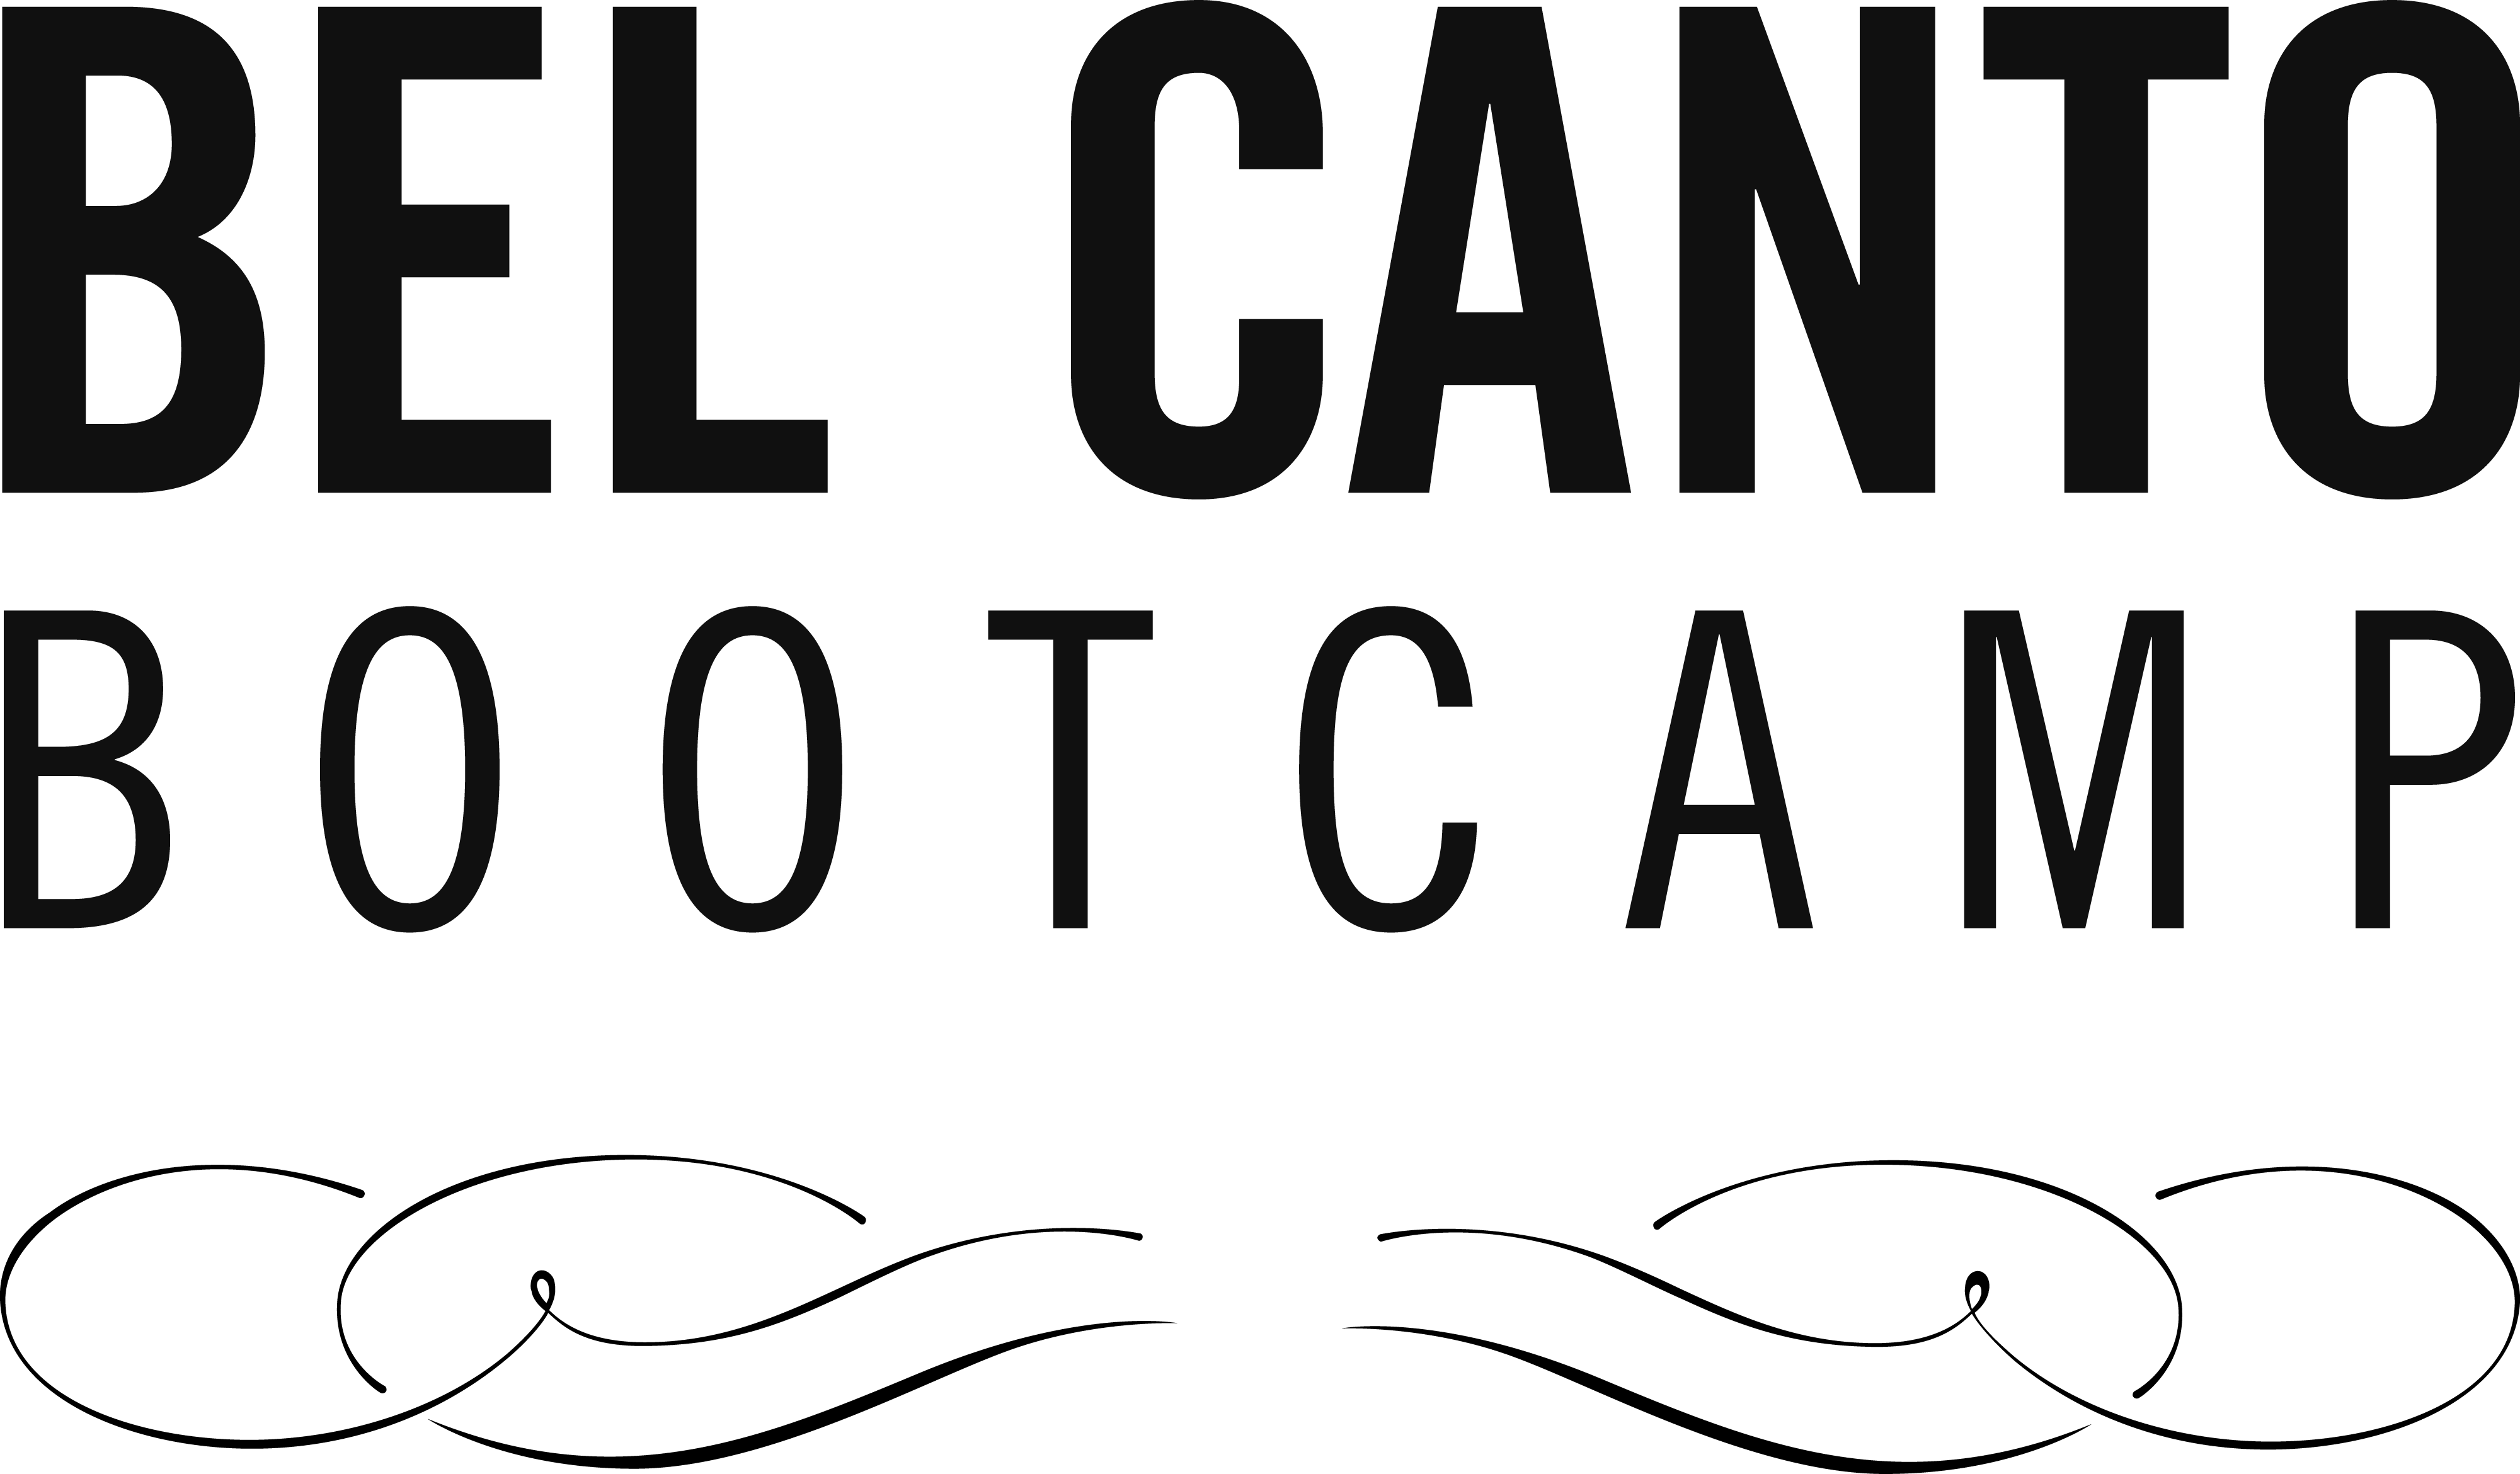 Bel Canto Bootcamp